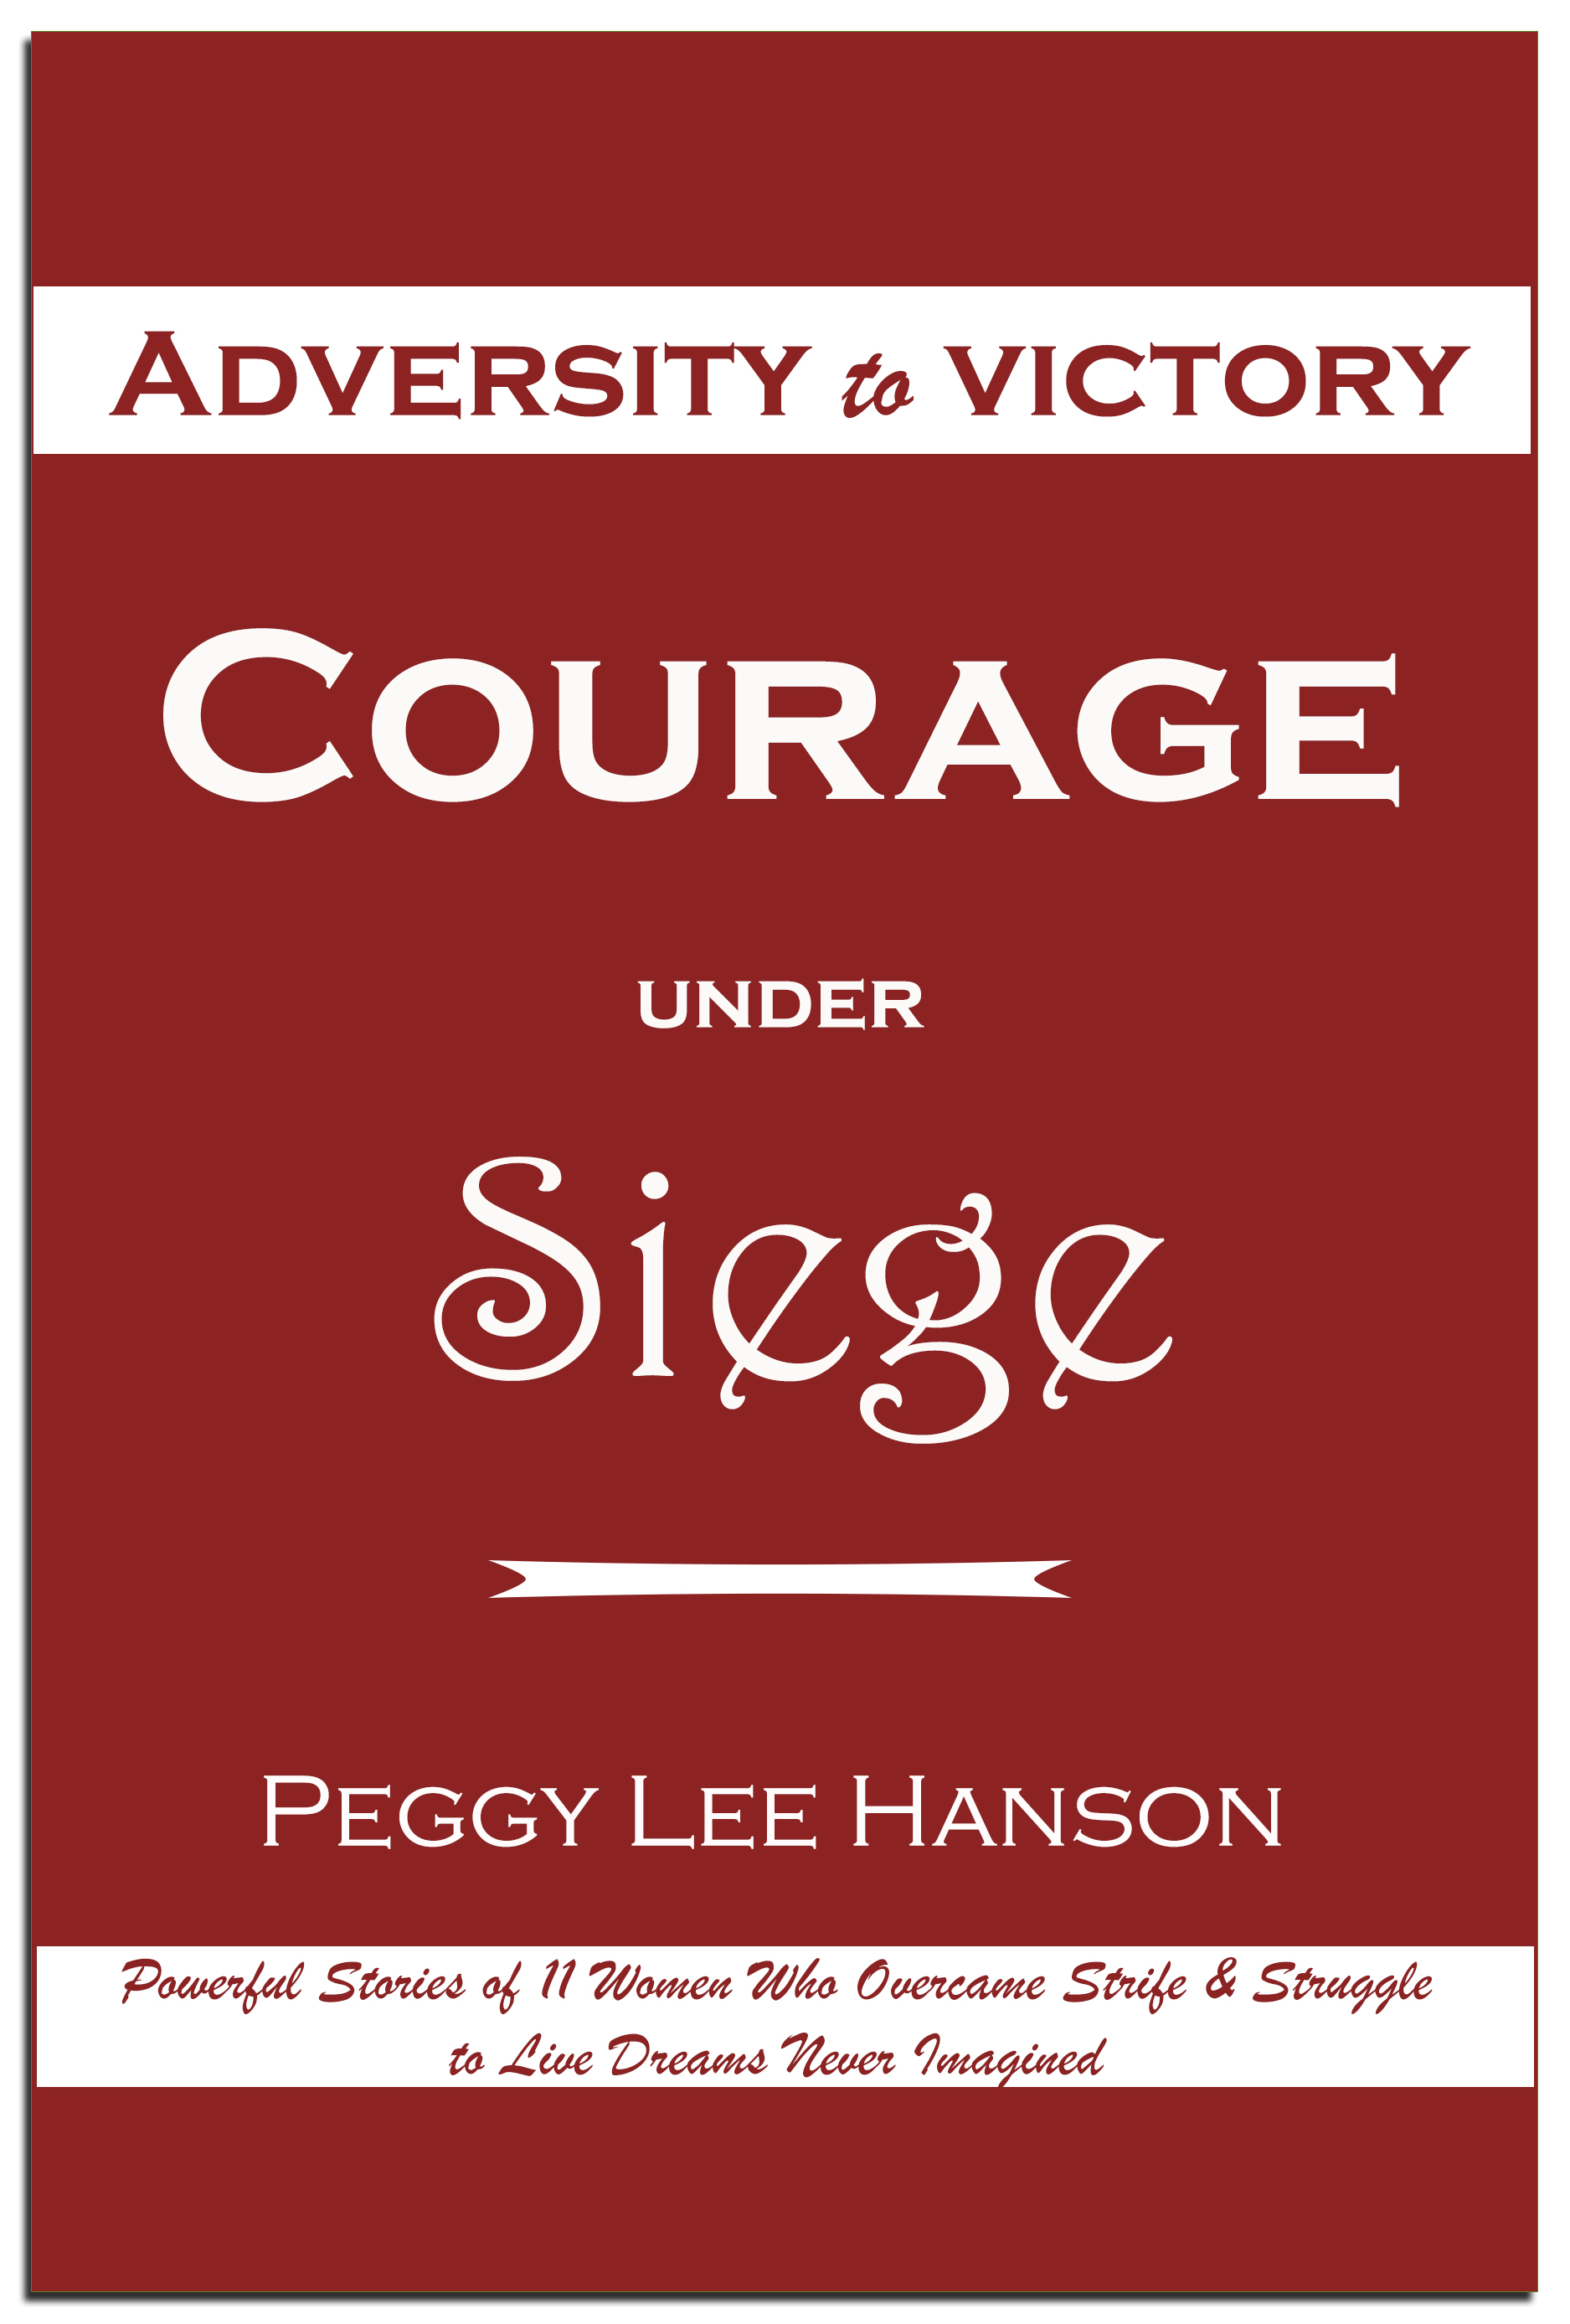 Courage Under Siege: Adversity to Victory by Peggy Lee Hanson